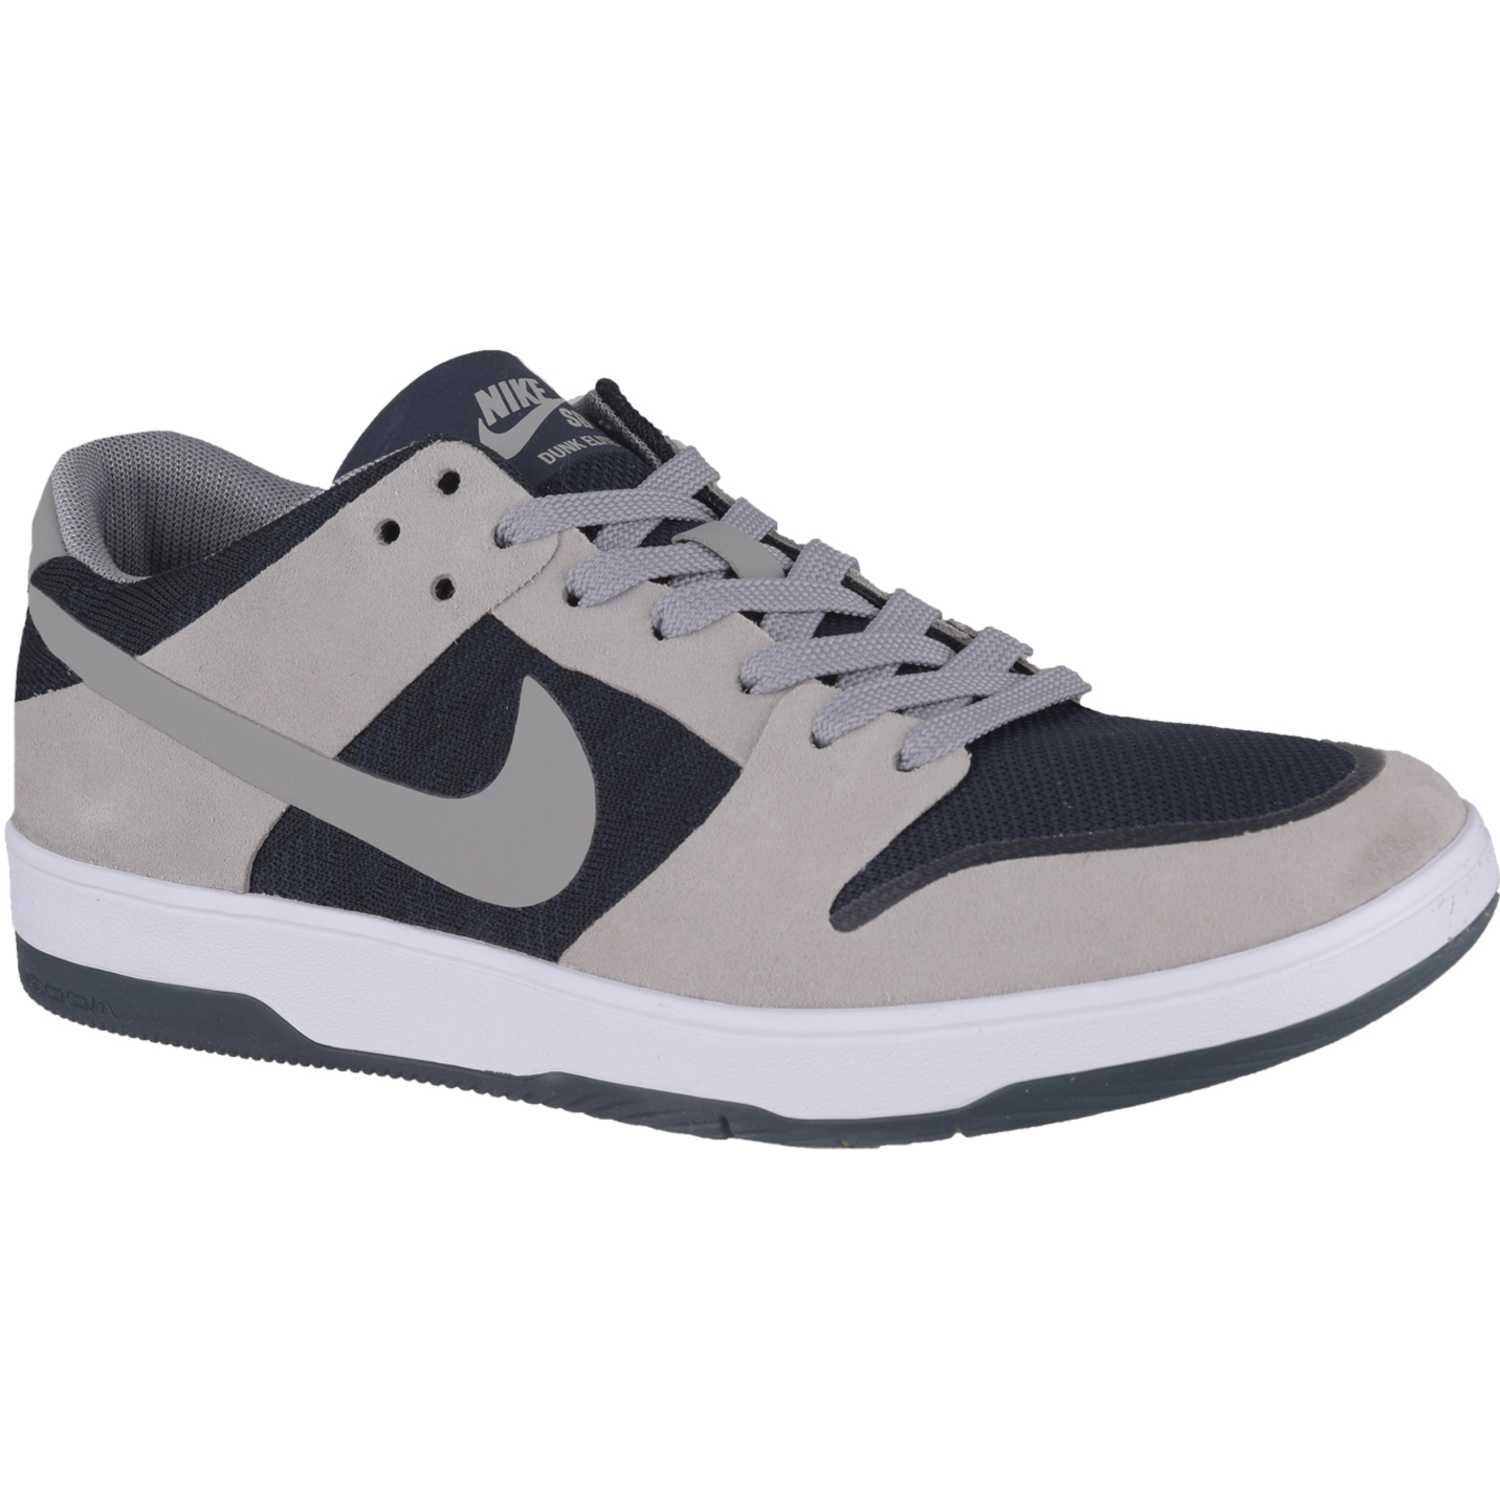 competitive price 79b86 a1015 Zapatilla de Hombre Nike Gris   negro sb zoom dunk low elite